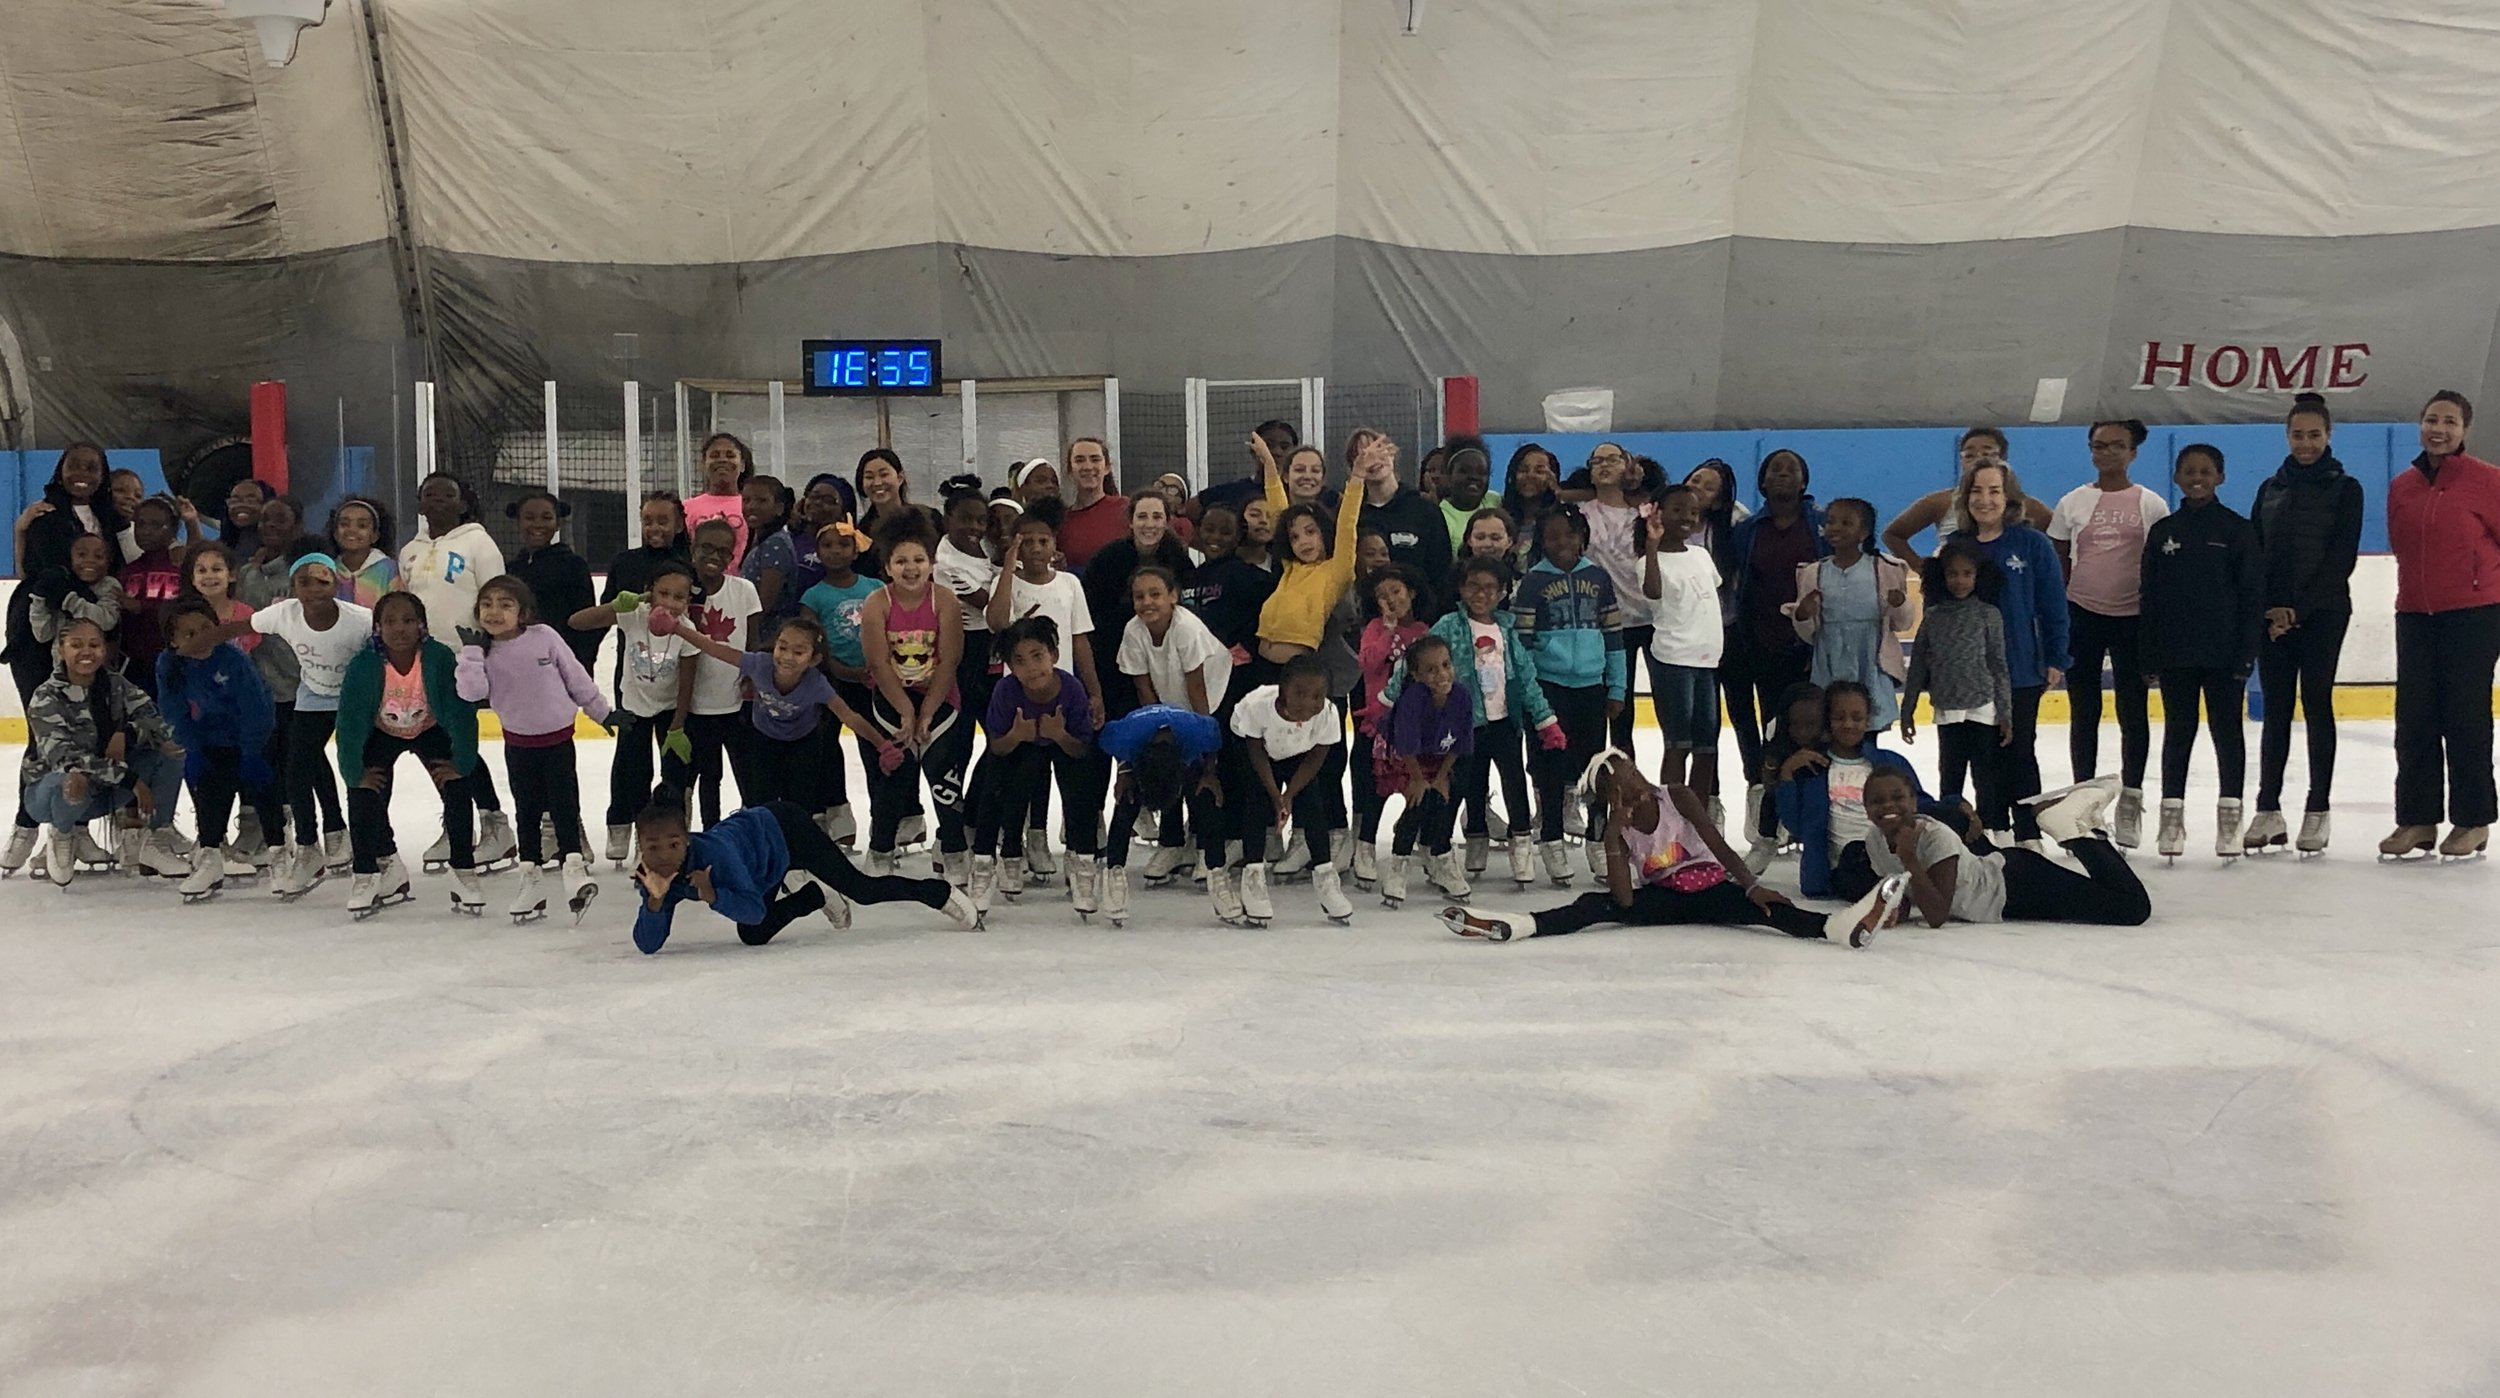 MY SUMMER DREAMS CAMP FAMILY  Figure Skating in Harlem